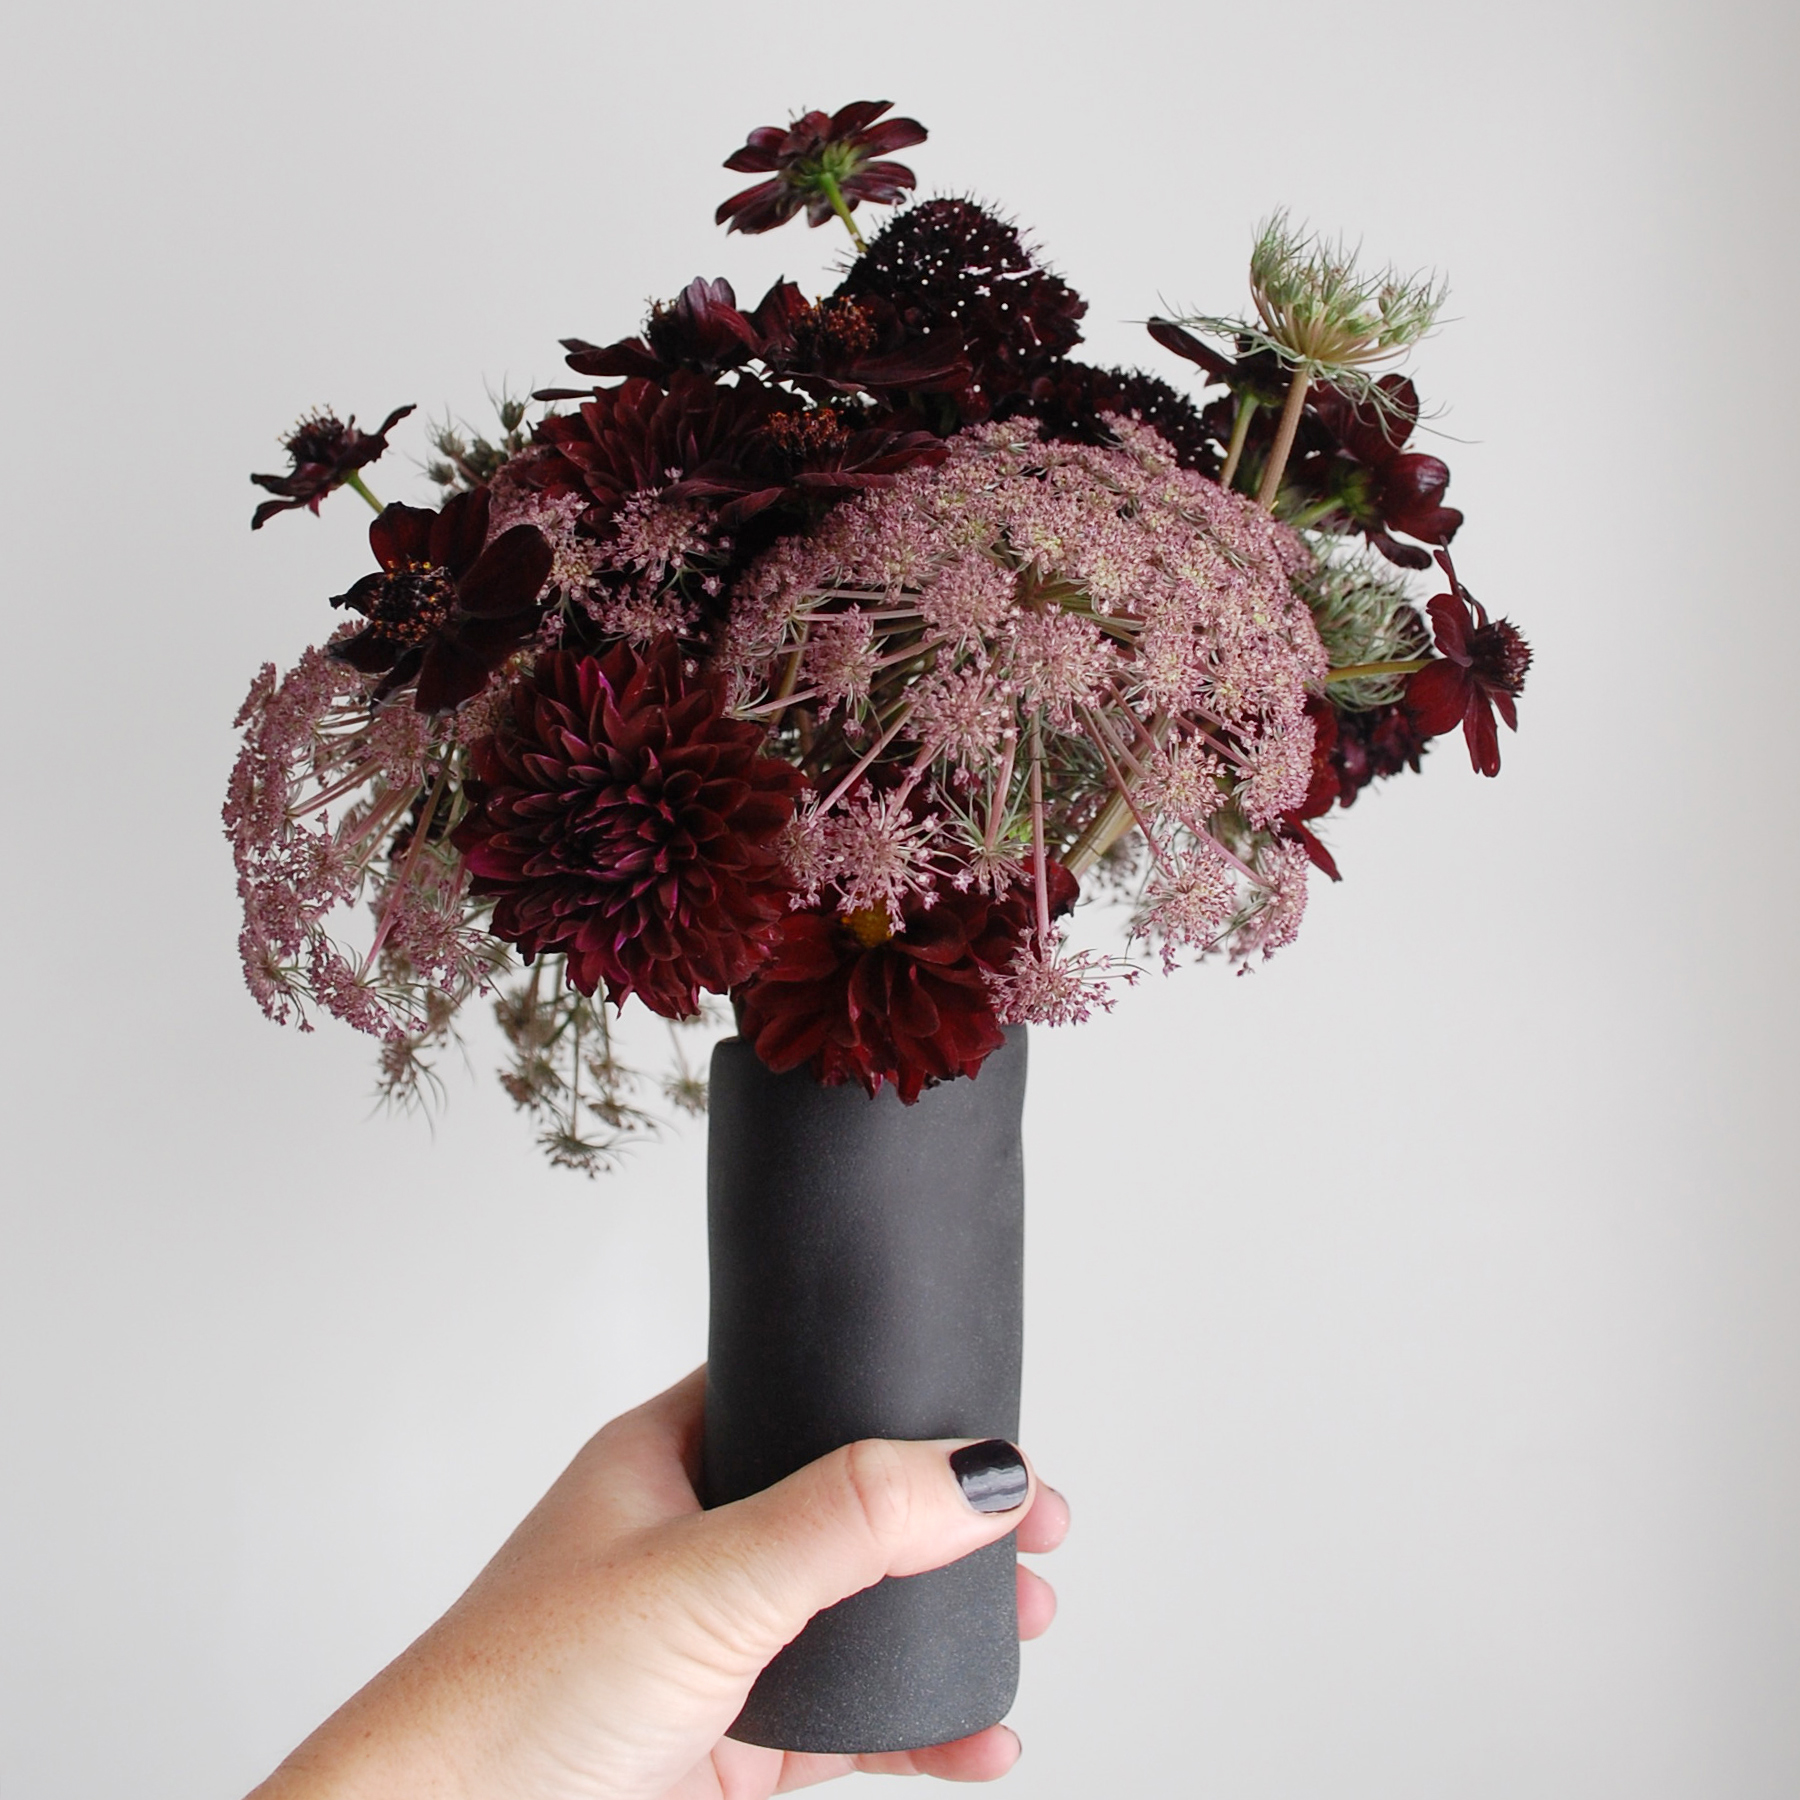 Black_Red_Flowers_Arrangement_Halloween.jpg